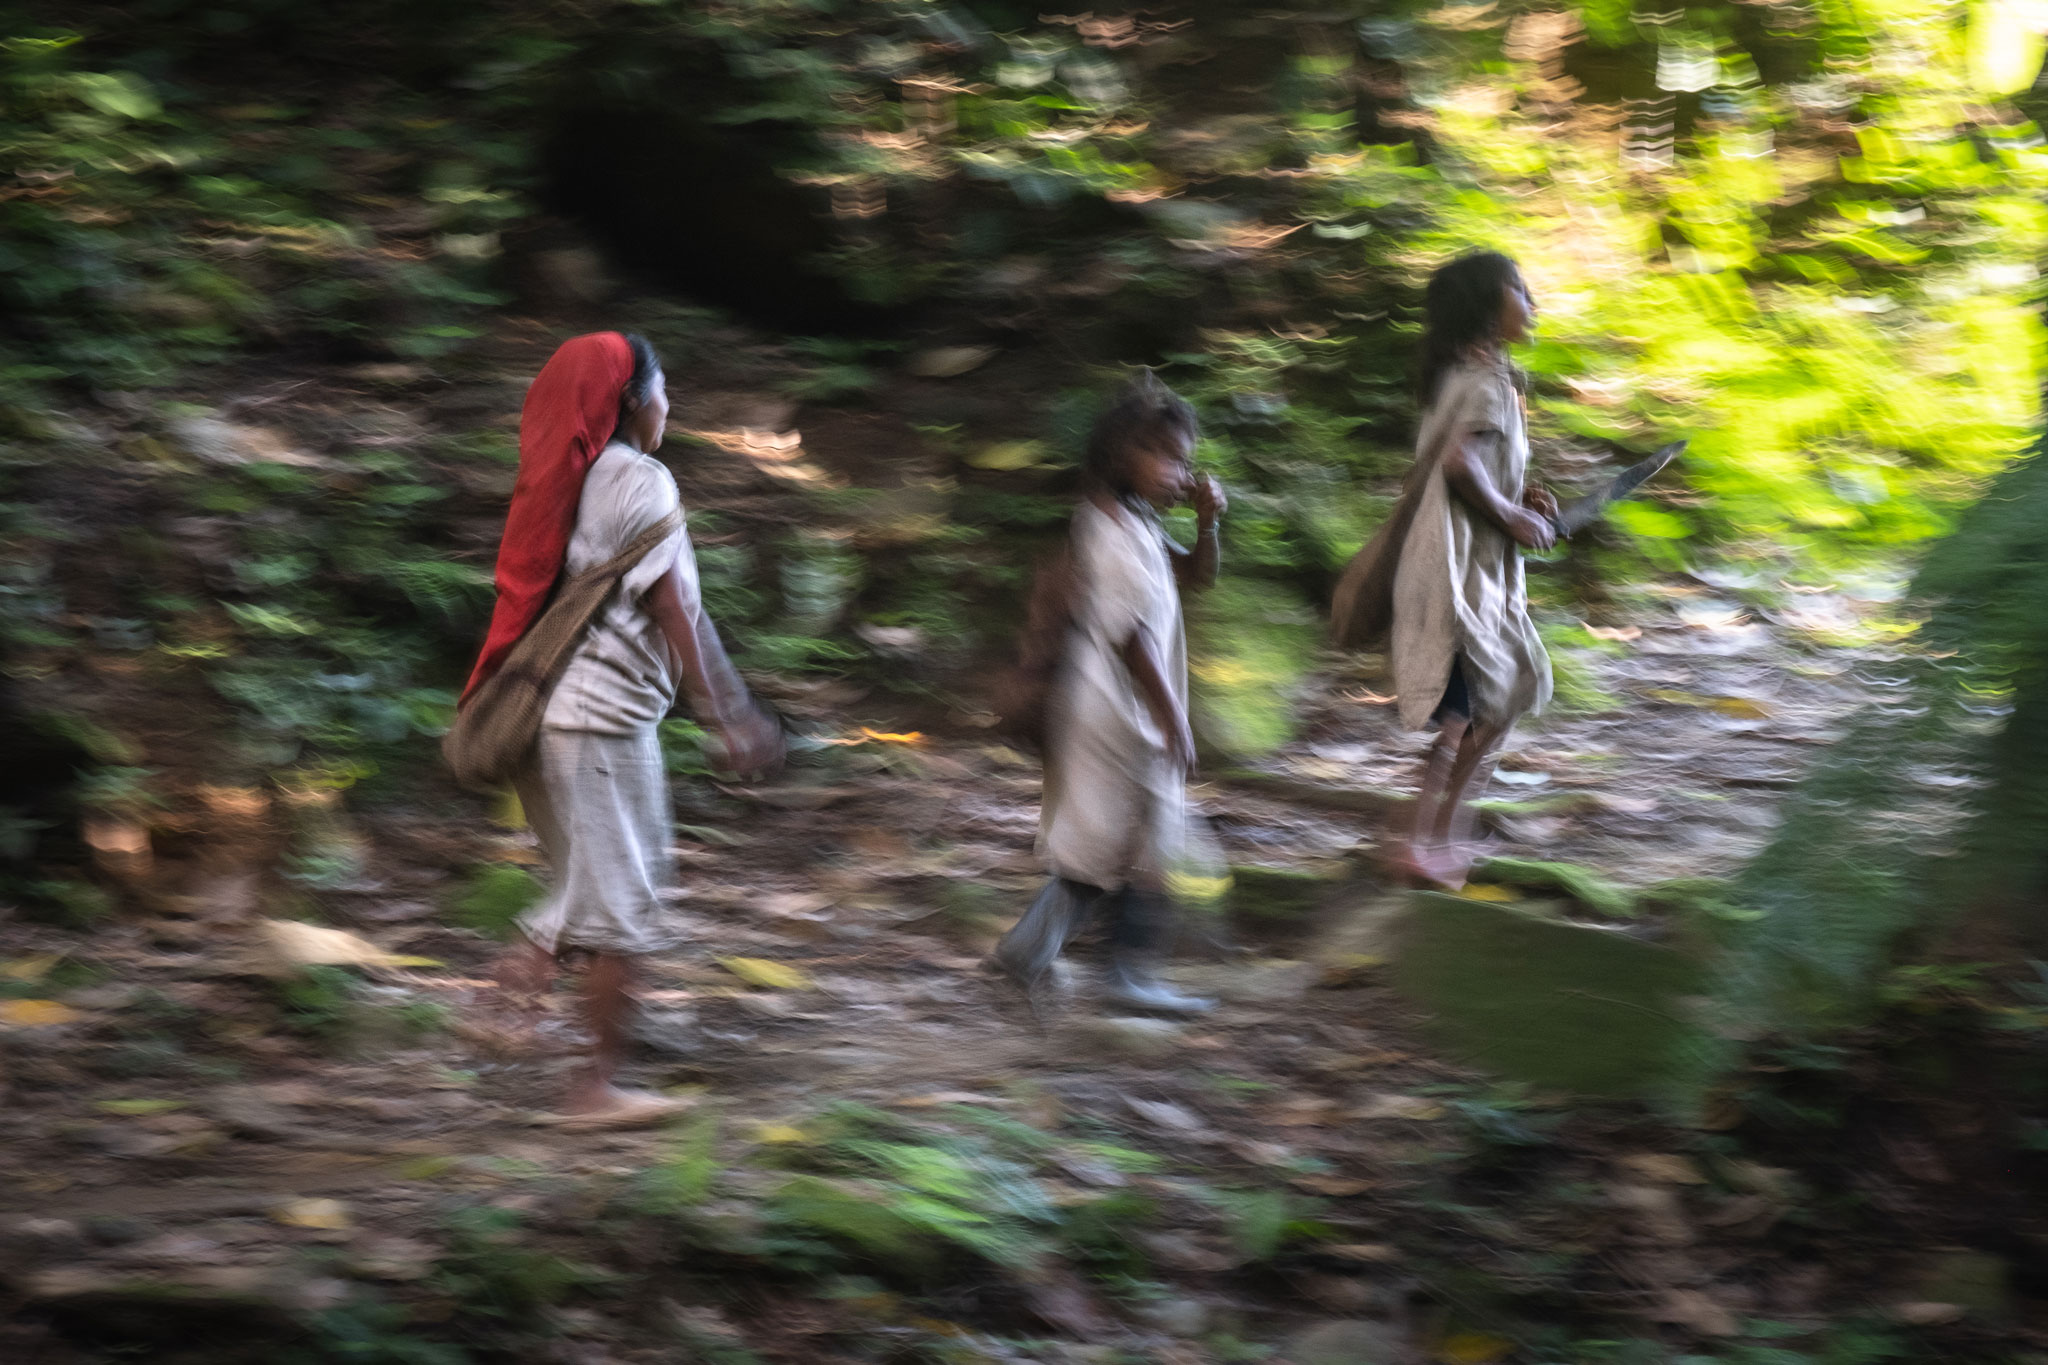 WIWA INDIGENOUS TRIBE IN THE SIERRA NEVADA DE SANTA MARTA